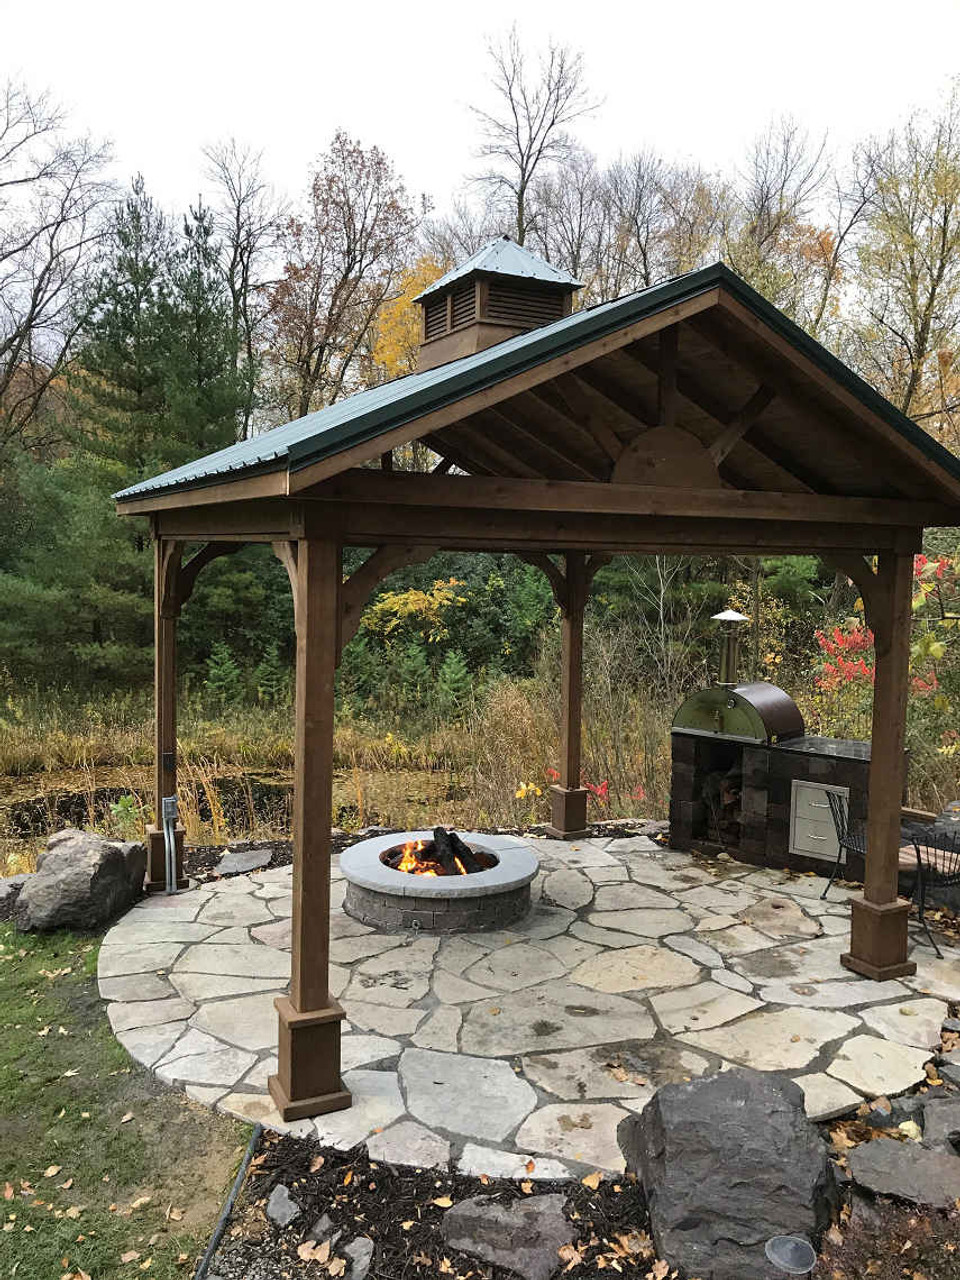 Fire pit and pavilion against the Minnesota woods.